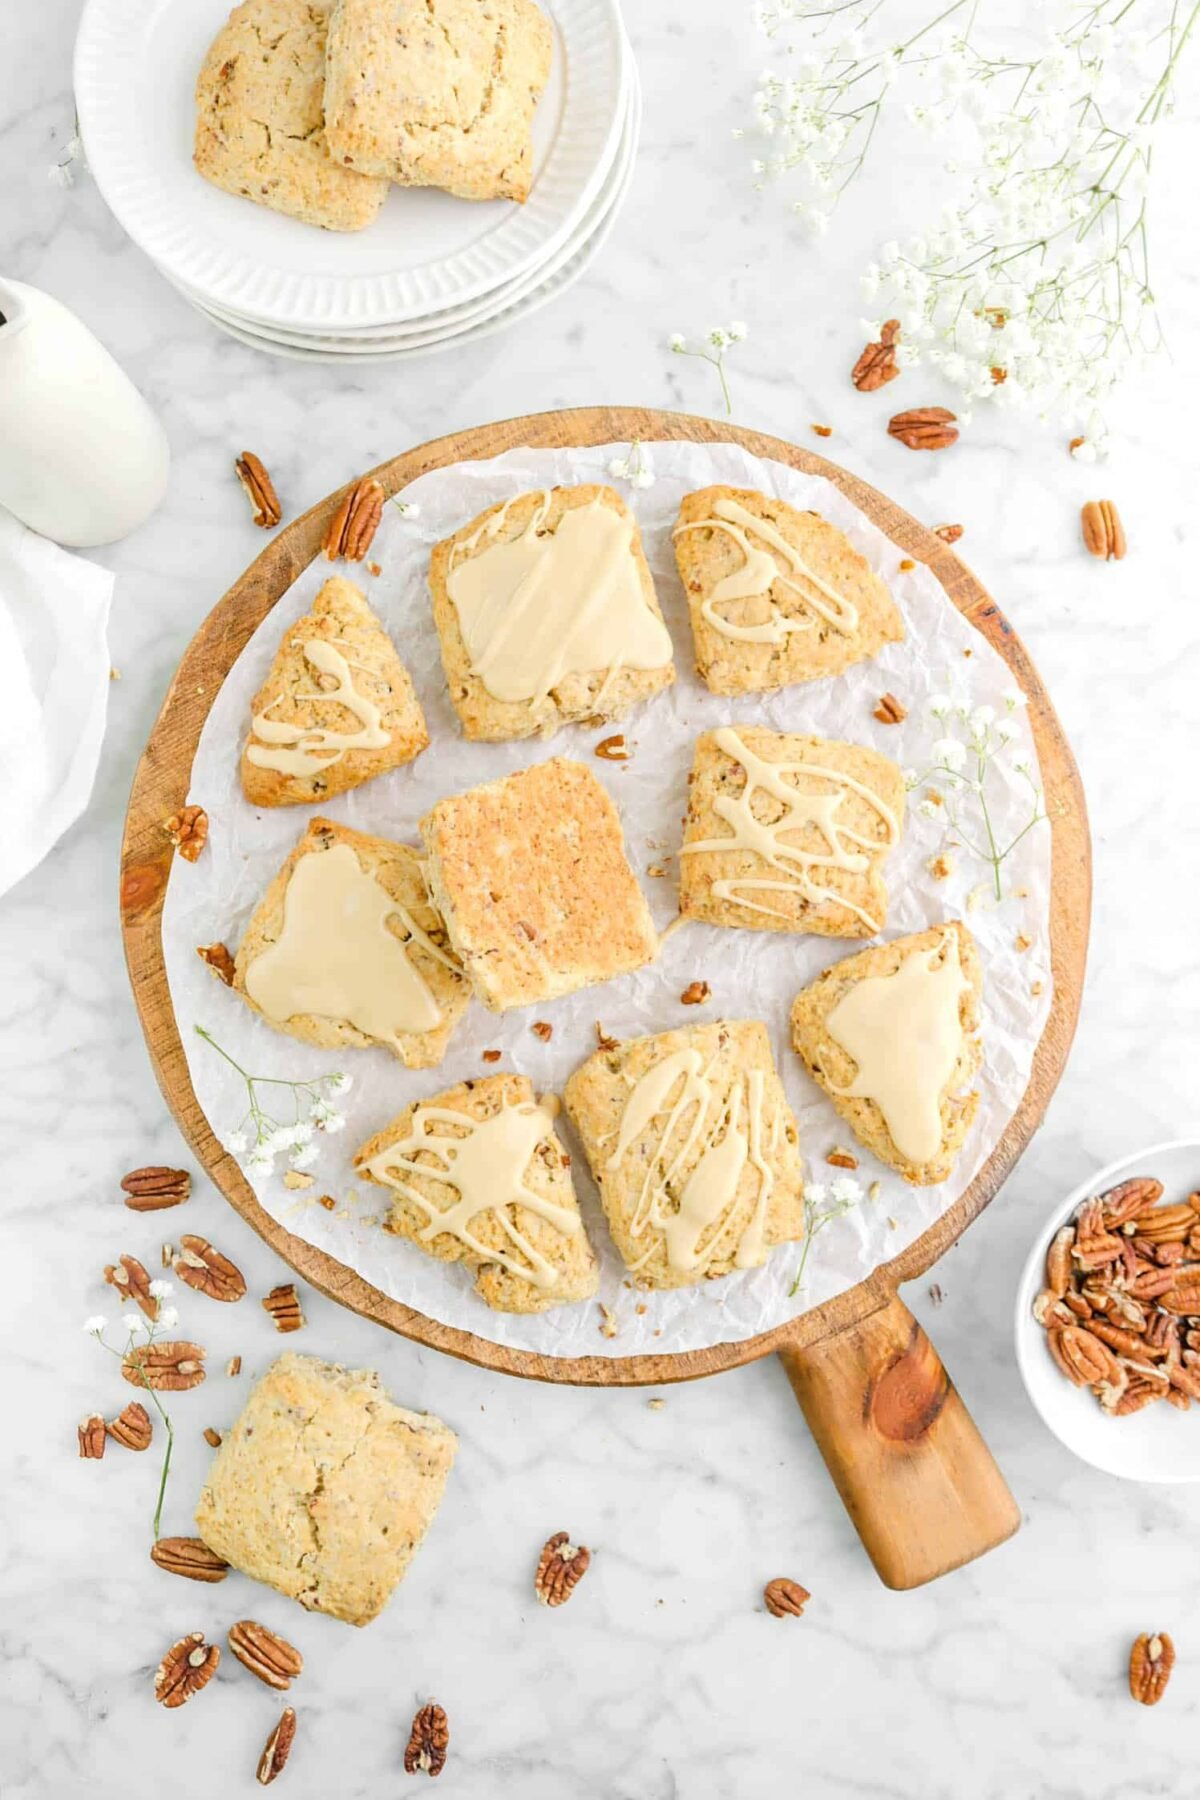 nine glazed maple pecan scones on wood board with flowers, pecans, and more scones around